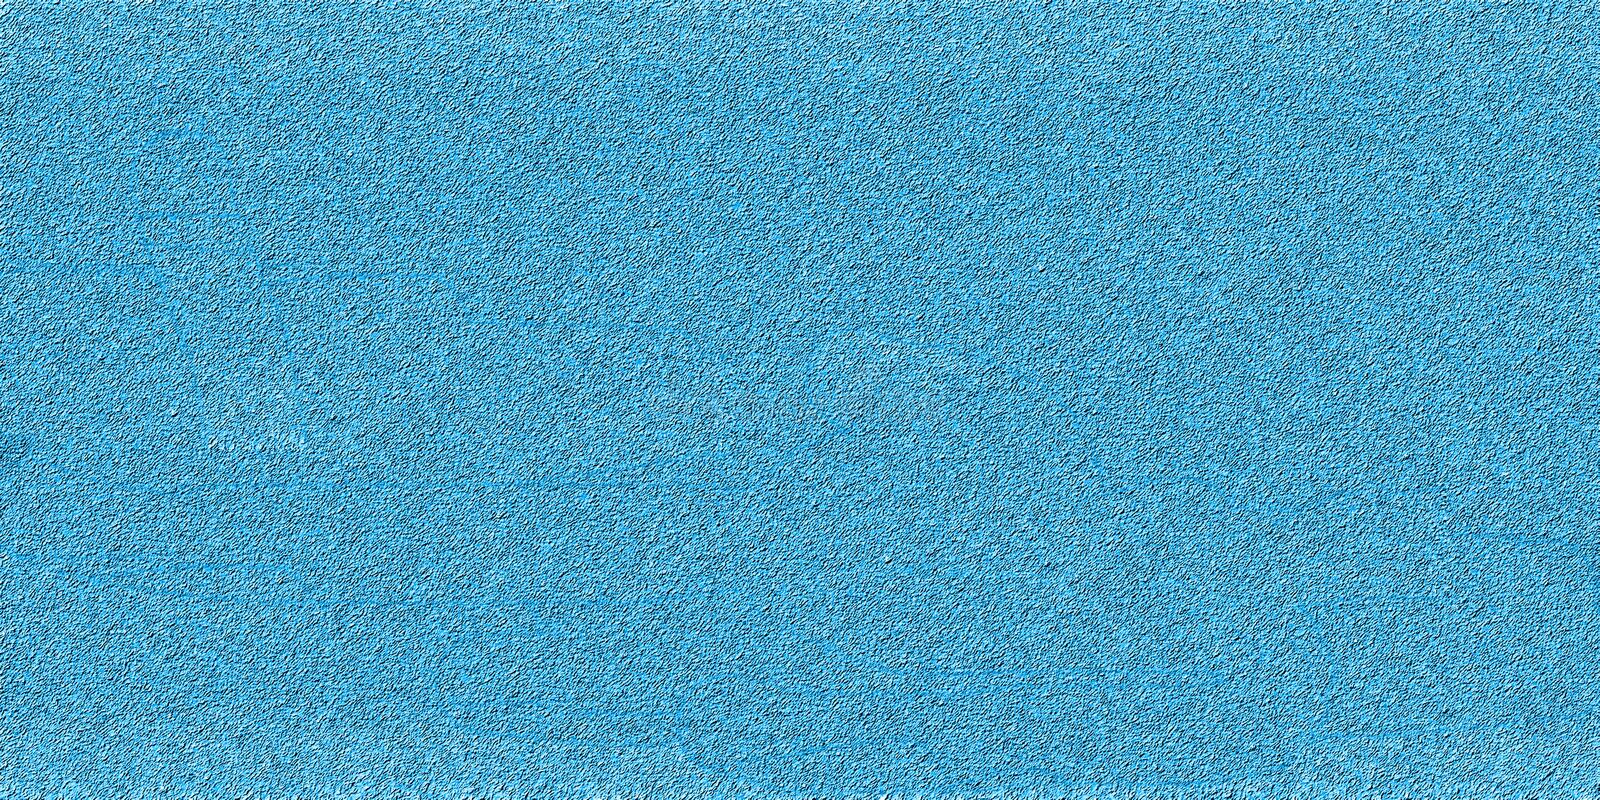 Rough blue turquoise texture background stock images